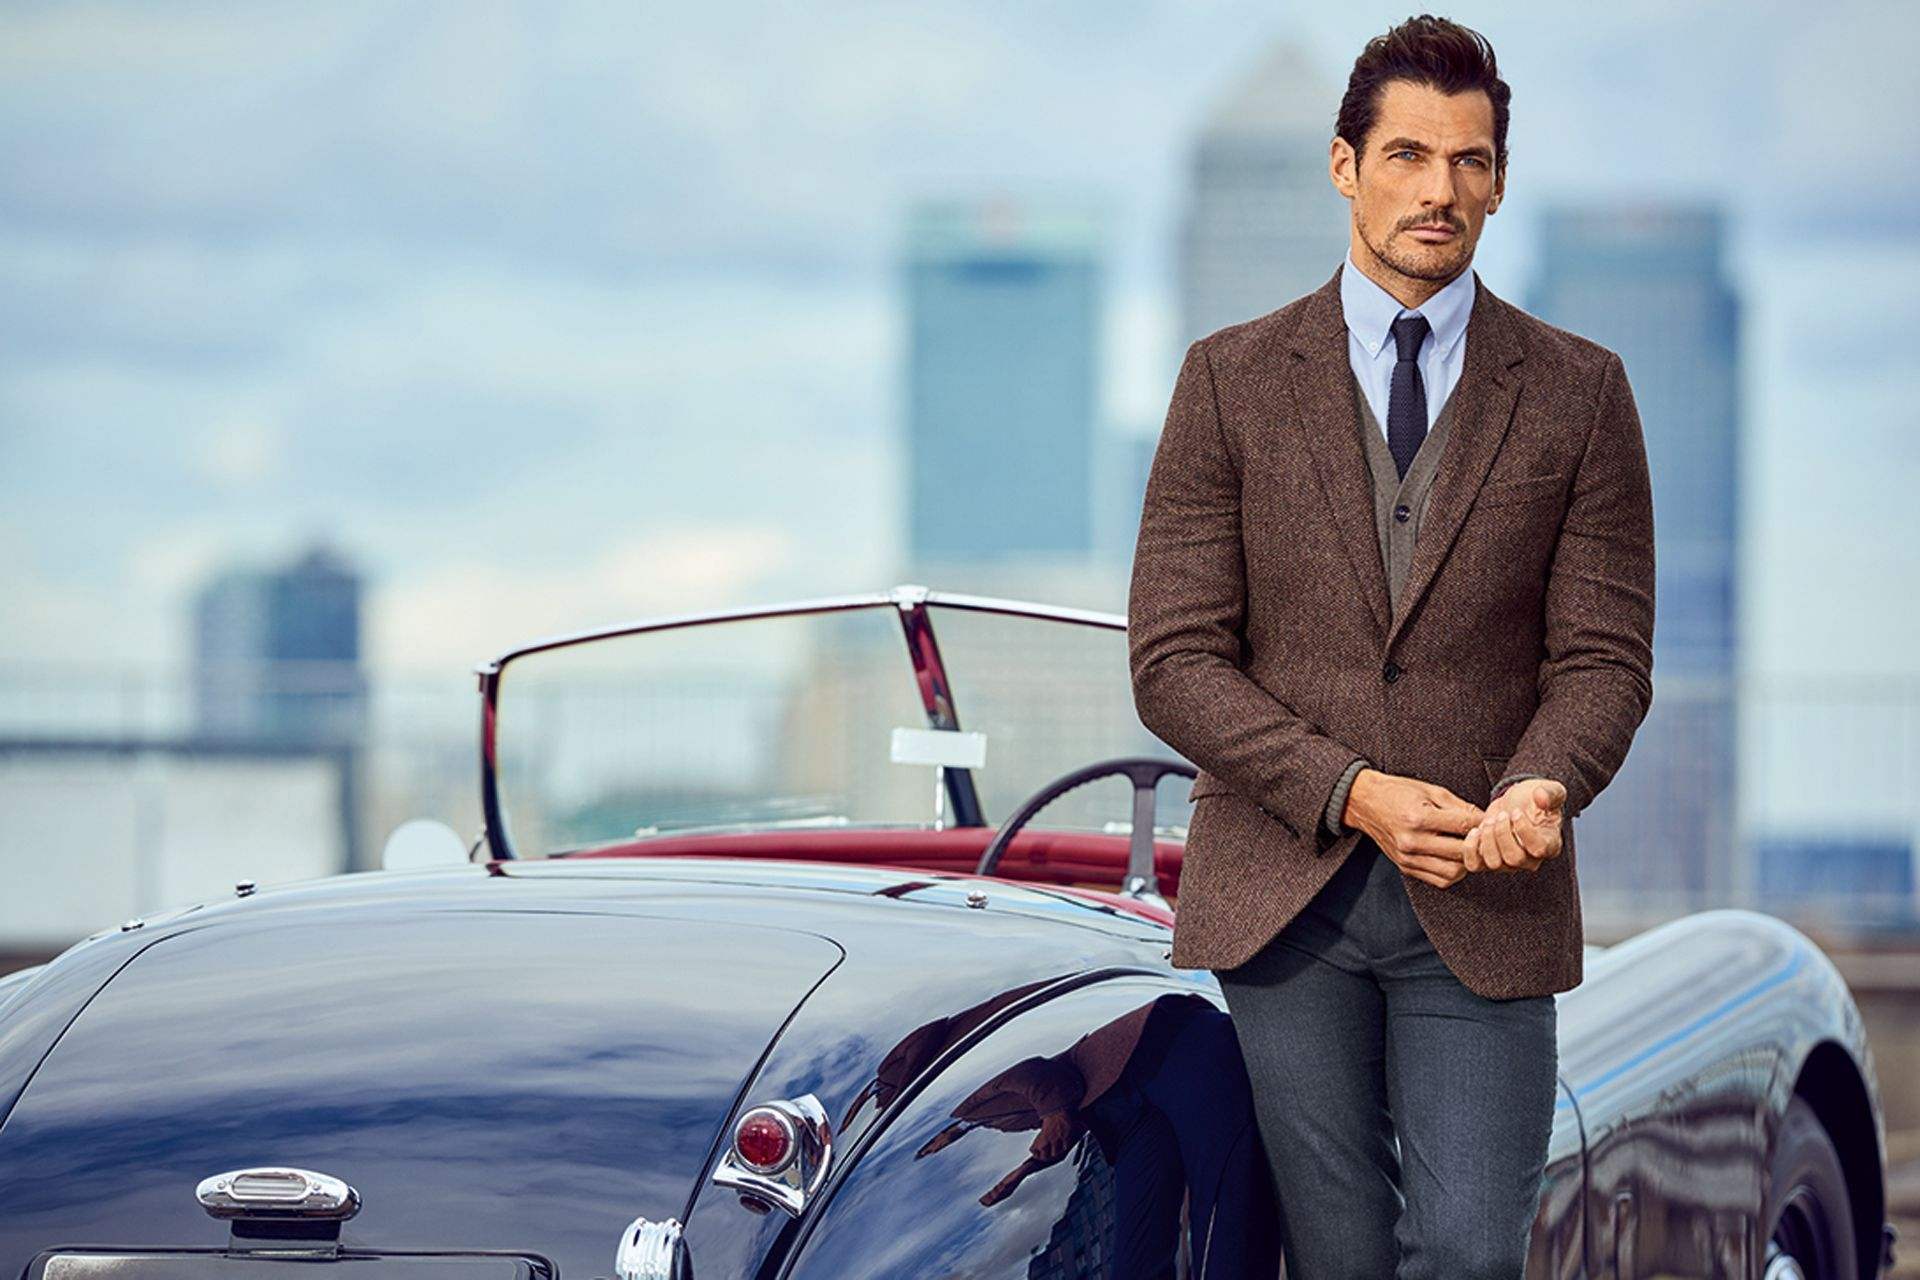 All the fashion and menswear advice you need from Britain's most famous male model. Re-watch our GQ Style Clinic Facebook Live